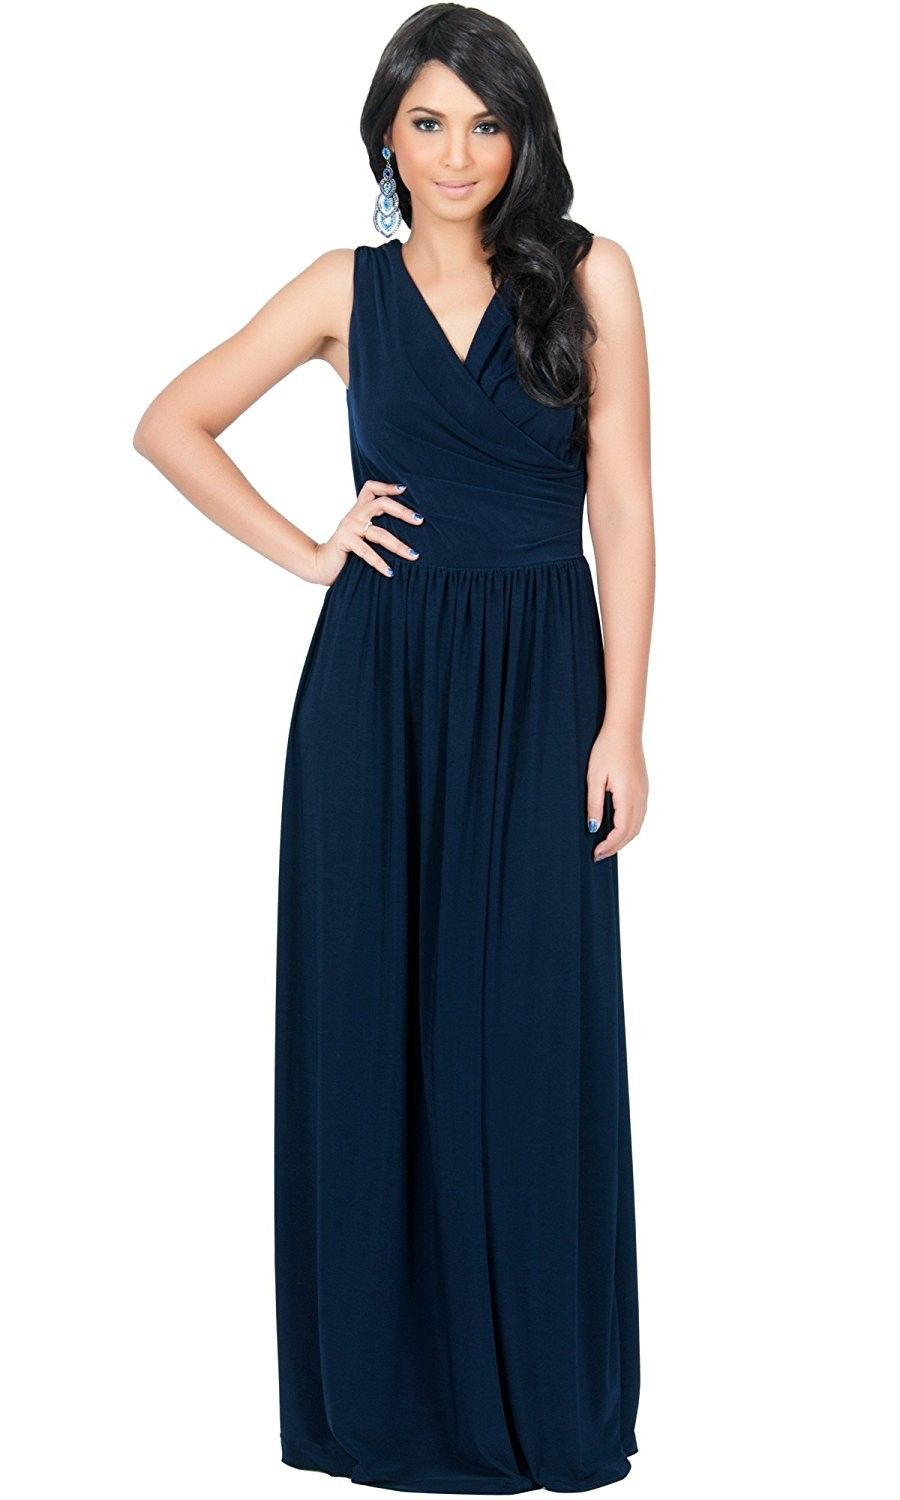 Womens Long Wrap Designer Sleeveless Evening Party Prom Gown Maxi Dress Navy Blue Cl11es9aadv Robe [ 1500 x 900 Pixel ]